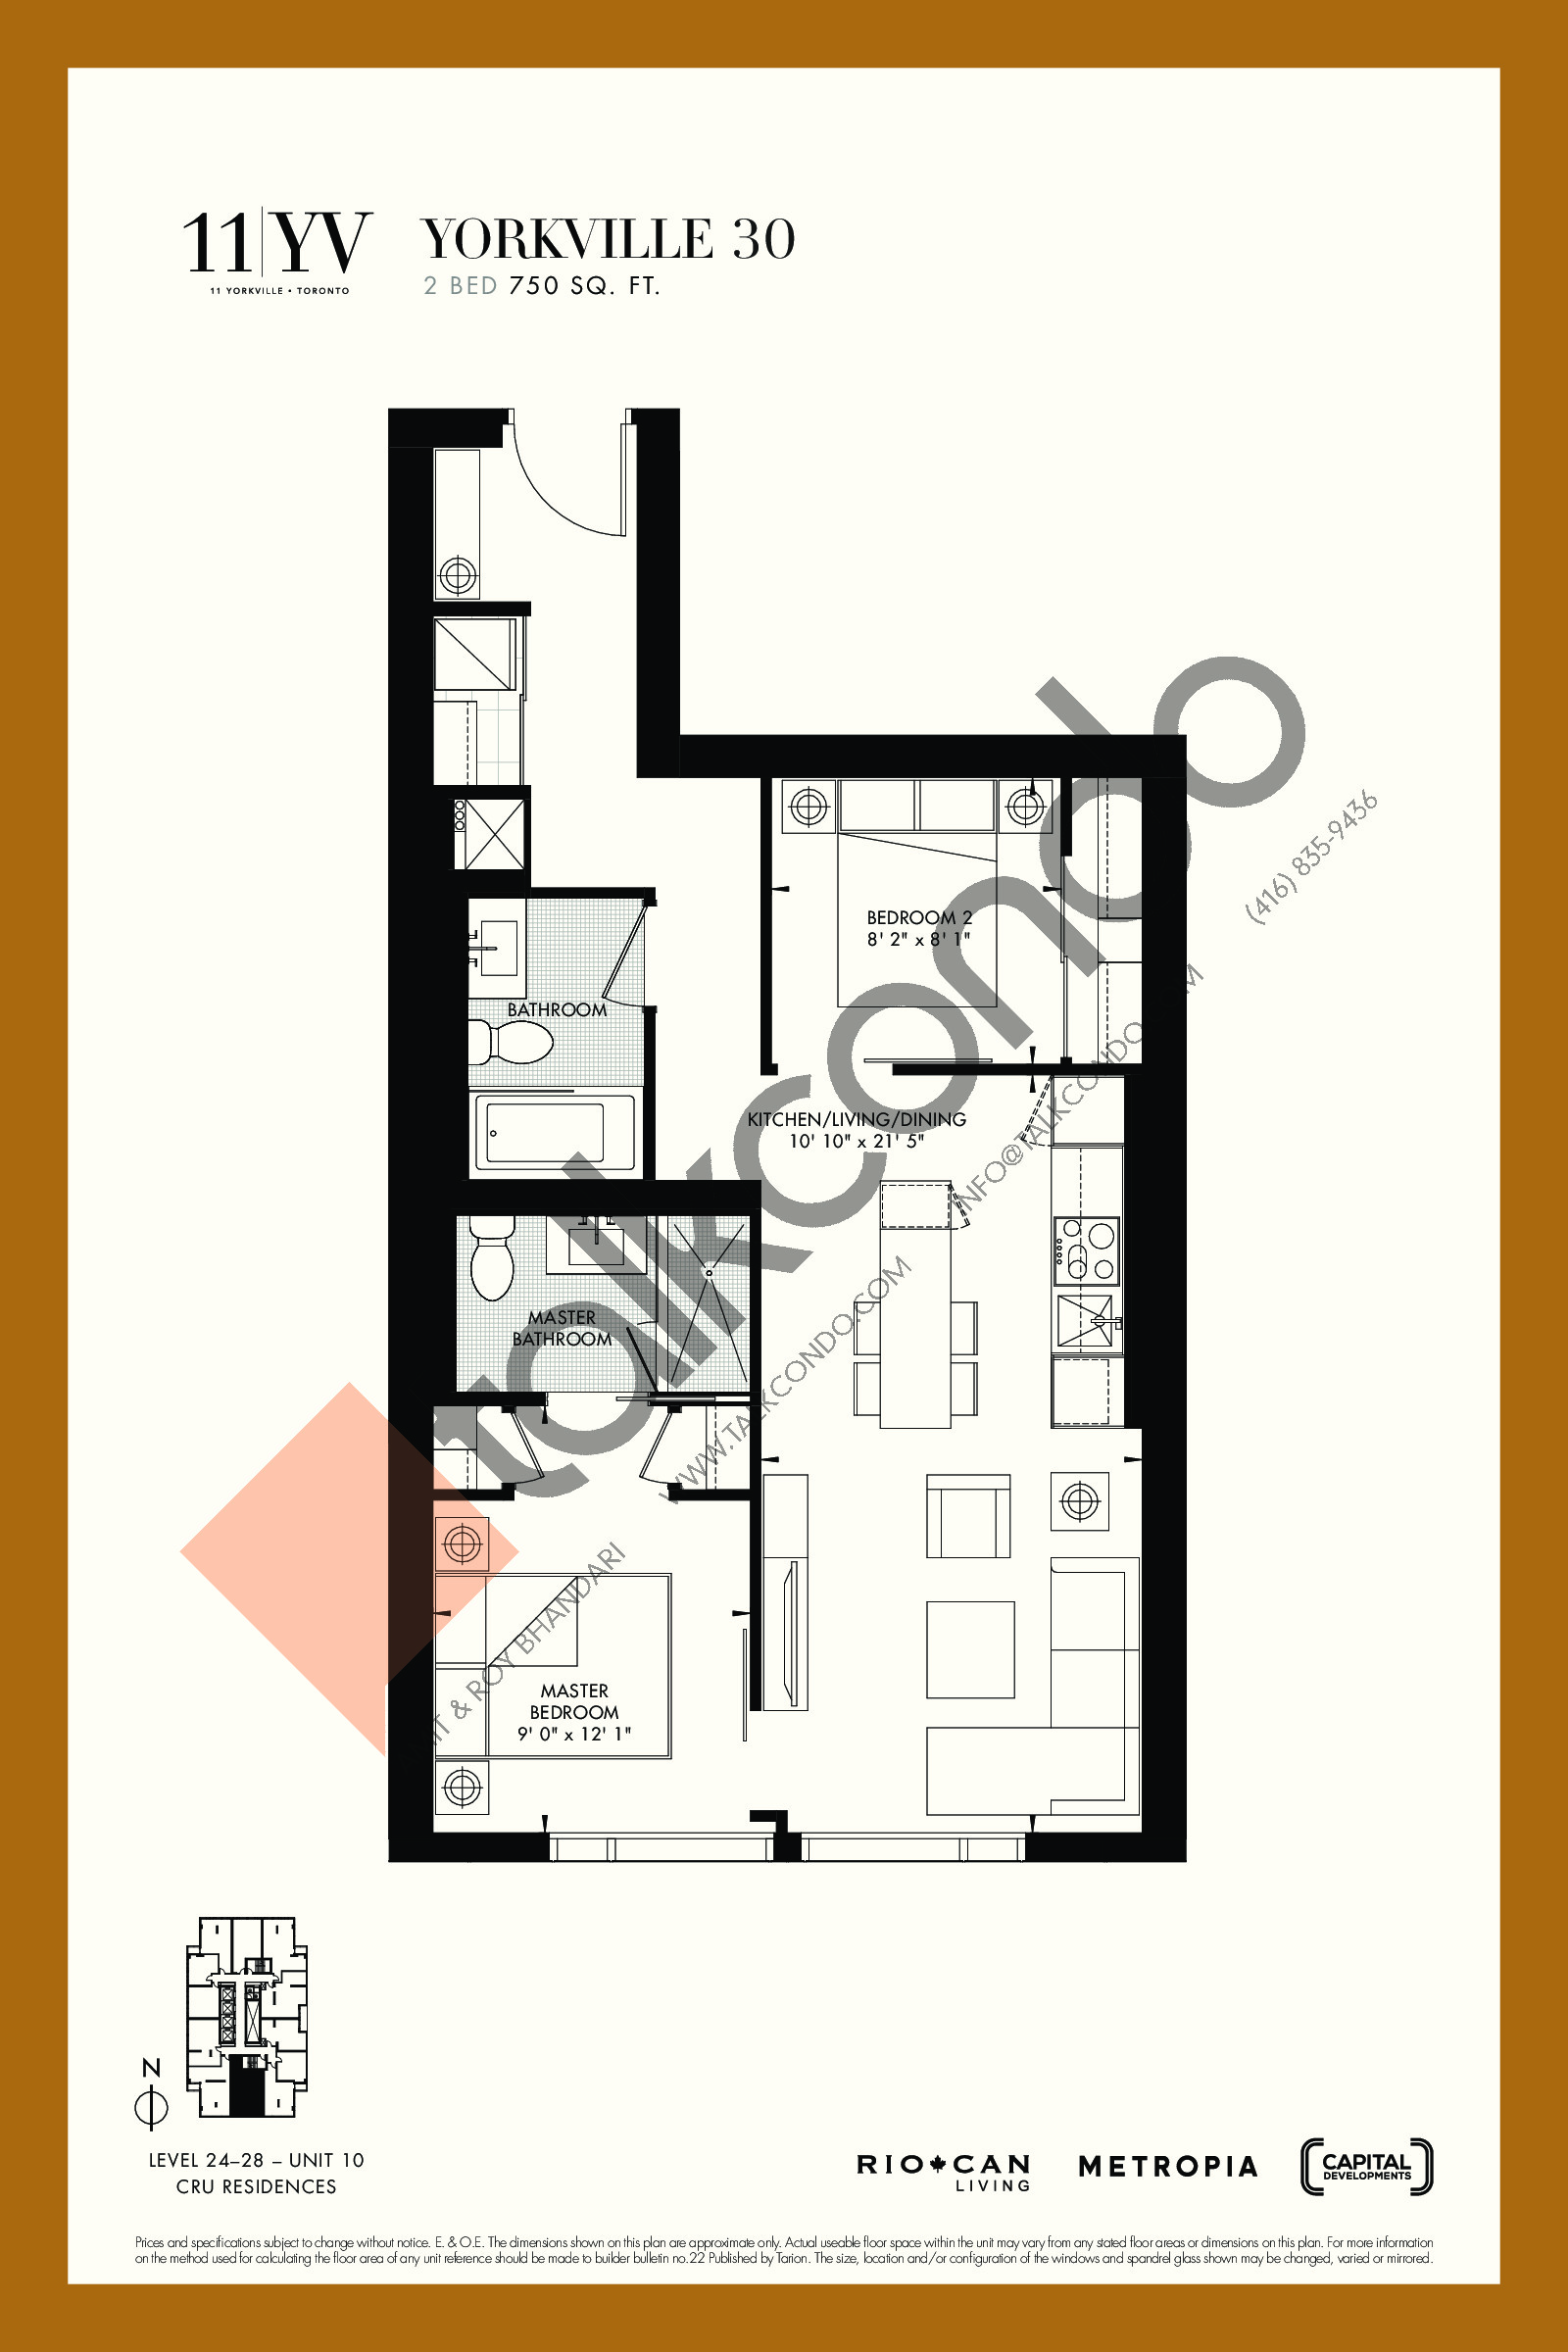 Yorkville 30 Floor Plan at 11YV Condos - 750 sq.ft